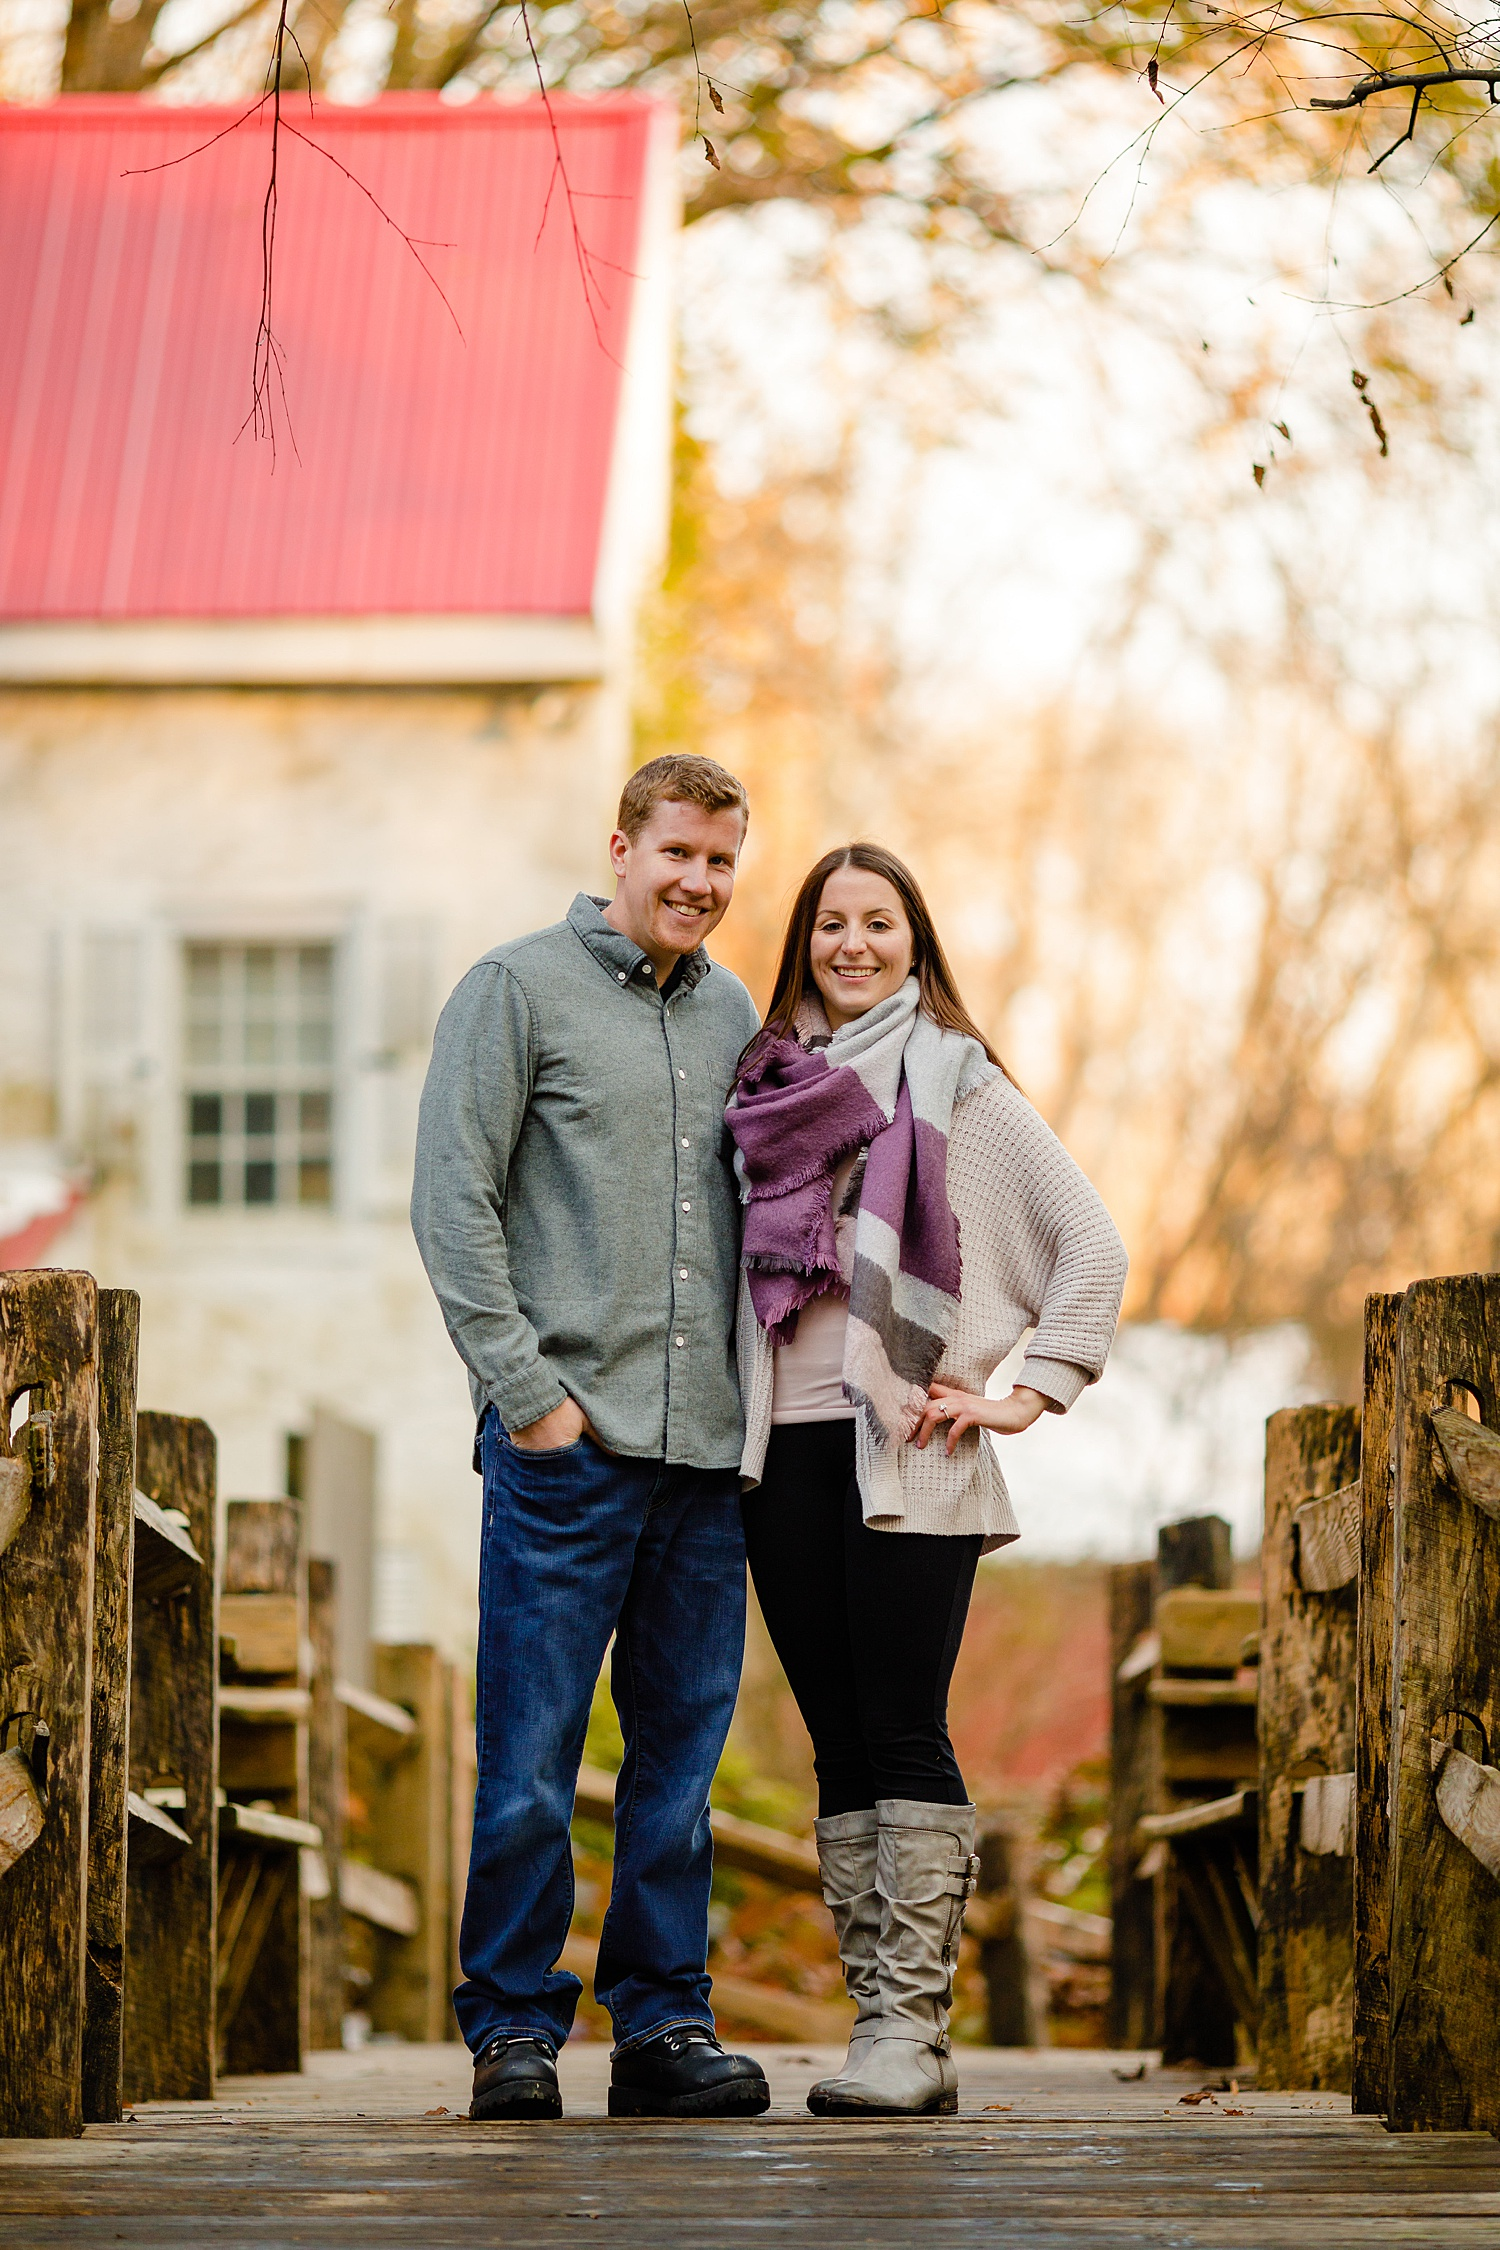 Kennett Square Pennsylvania engagement session wedding portrait photographer